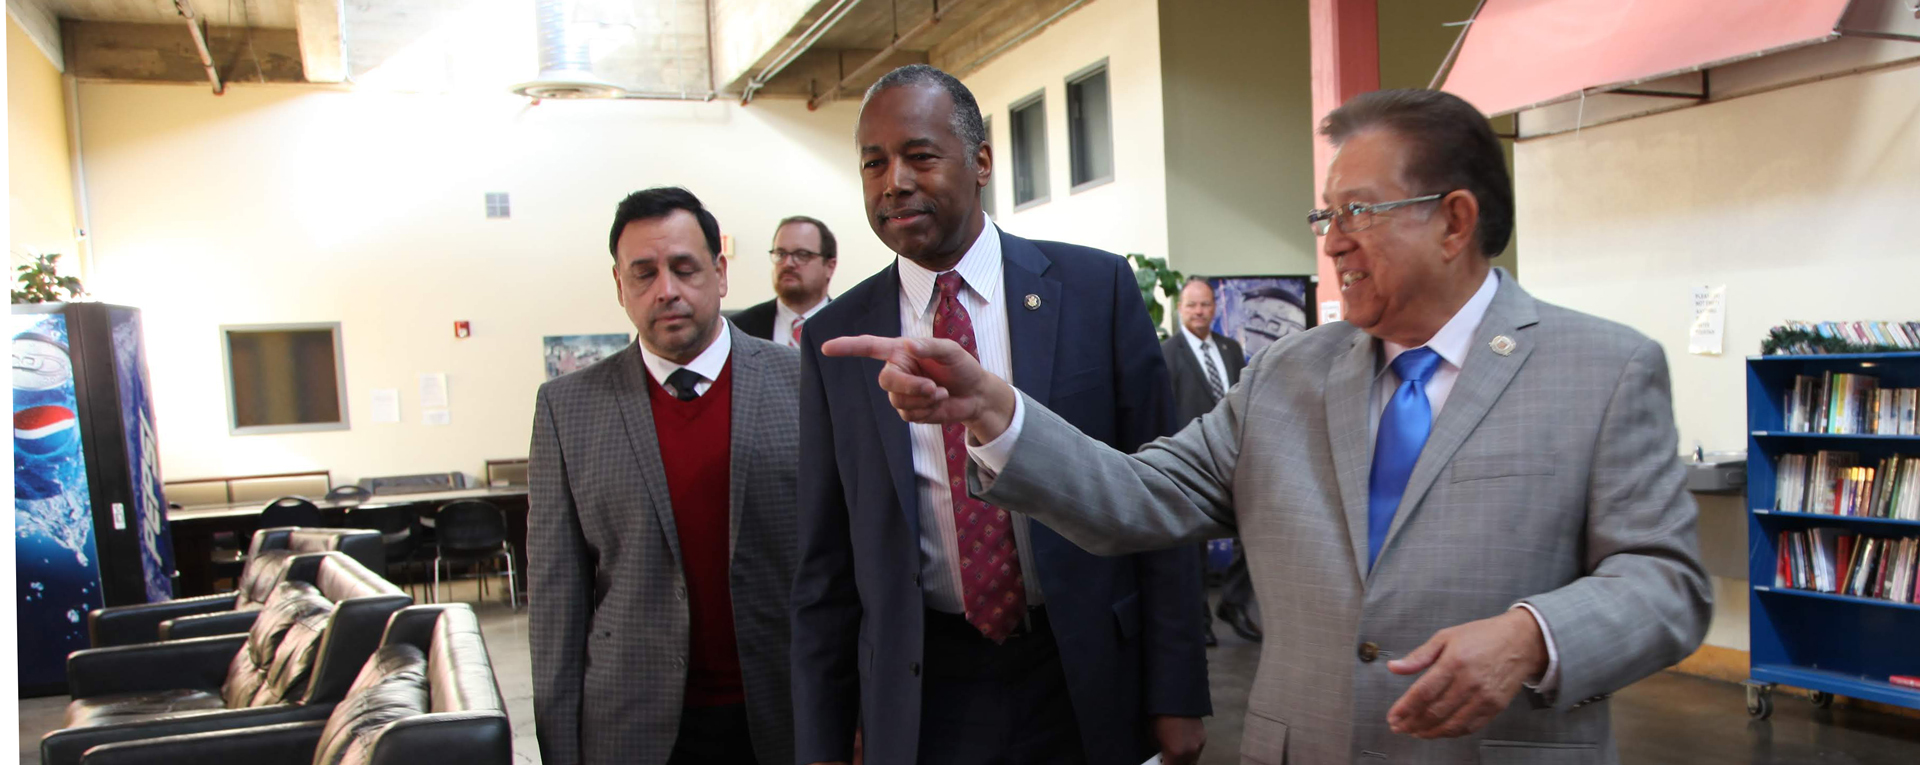 Sec. Ben Carson tours the American G.I. Forum